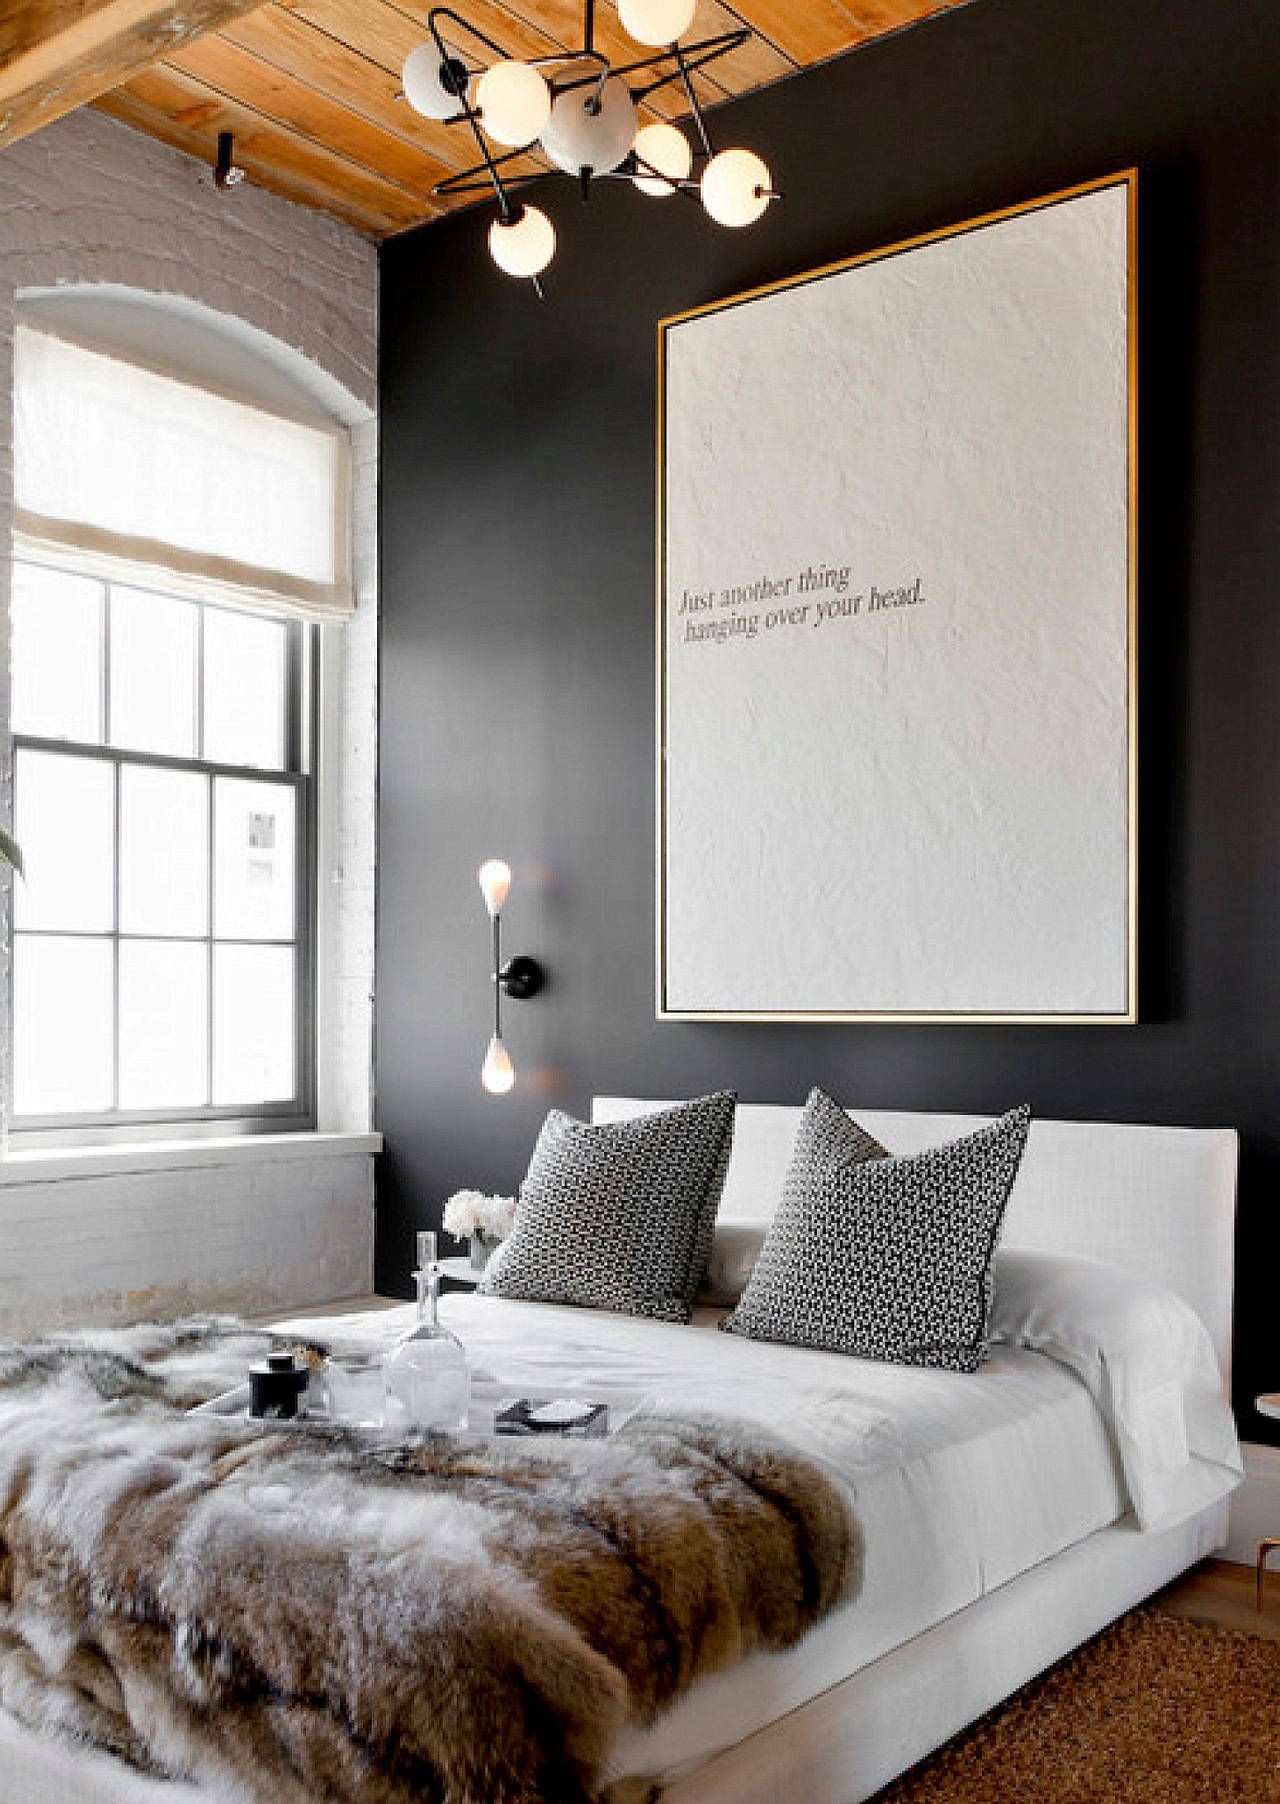 """I love the dark wall the artfully framed quote """"just another thing hanging over your head"""" and the lighting on the side & overhead"""